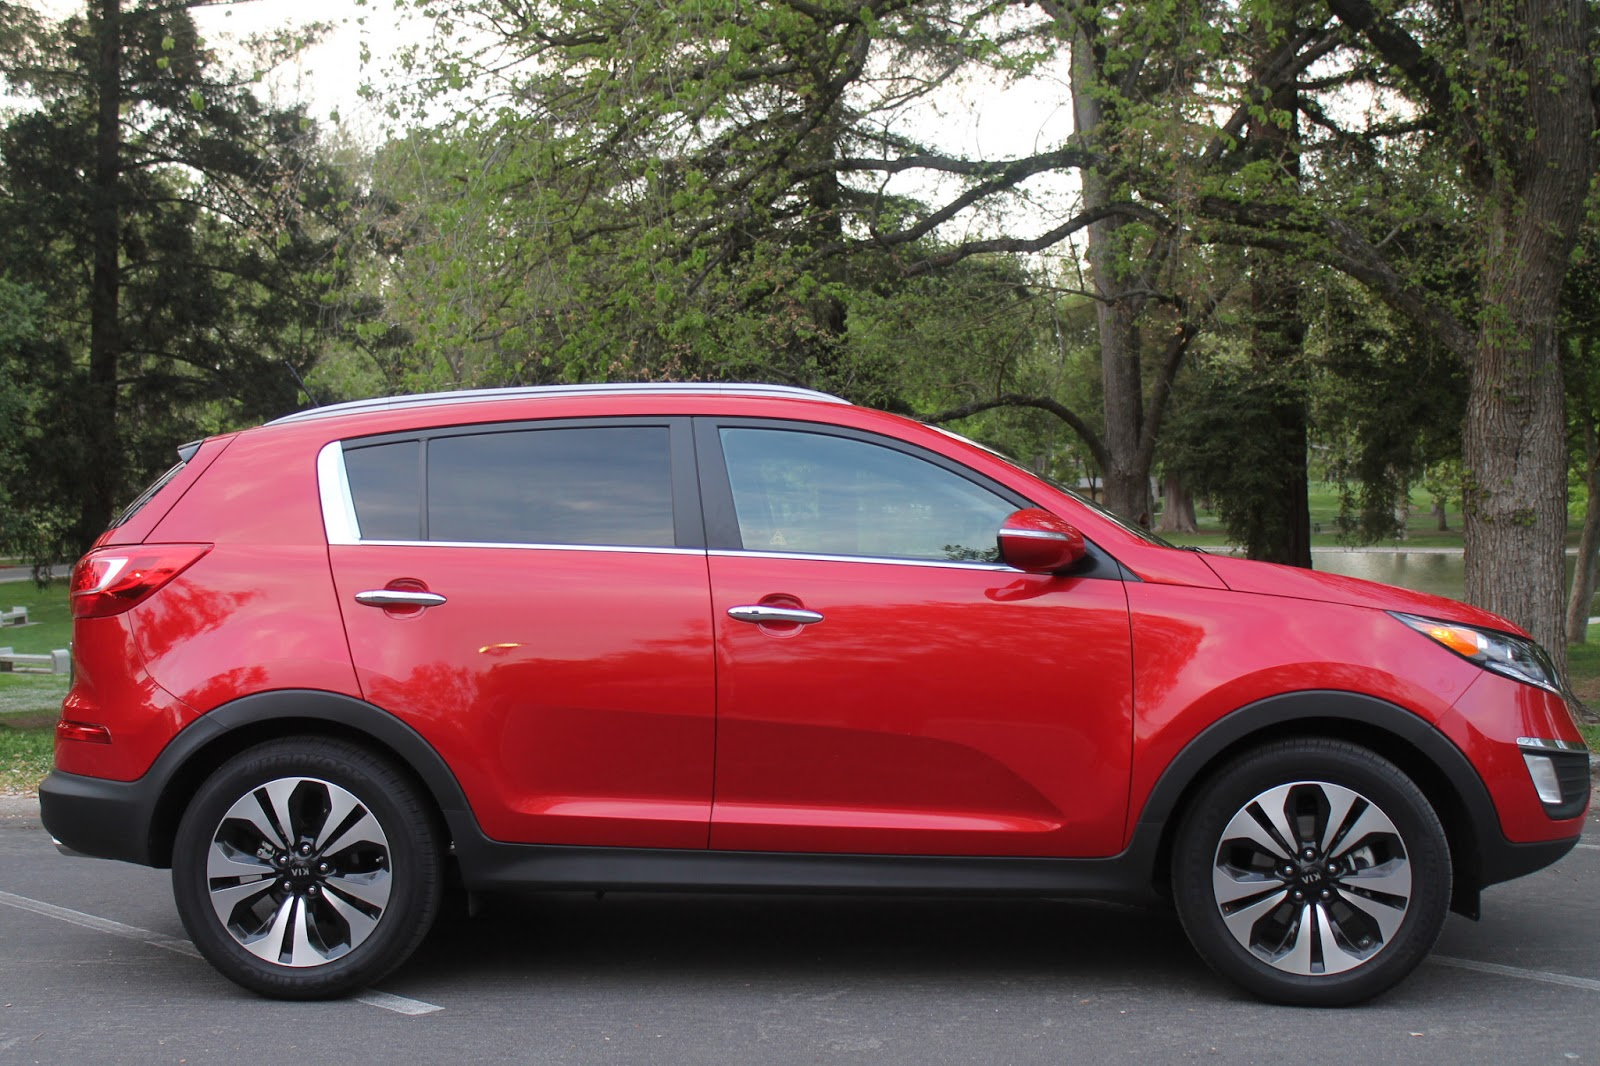 2013 Kia Sportage SX Turbo Vehicle Review   Mama of 3 Munchkins